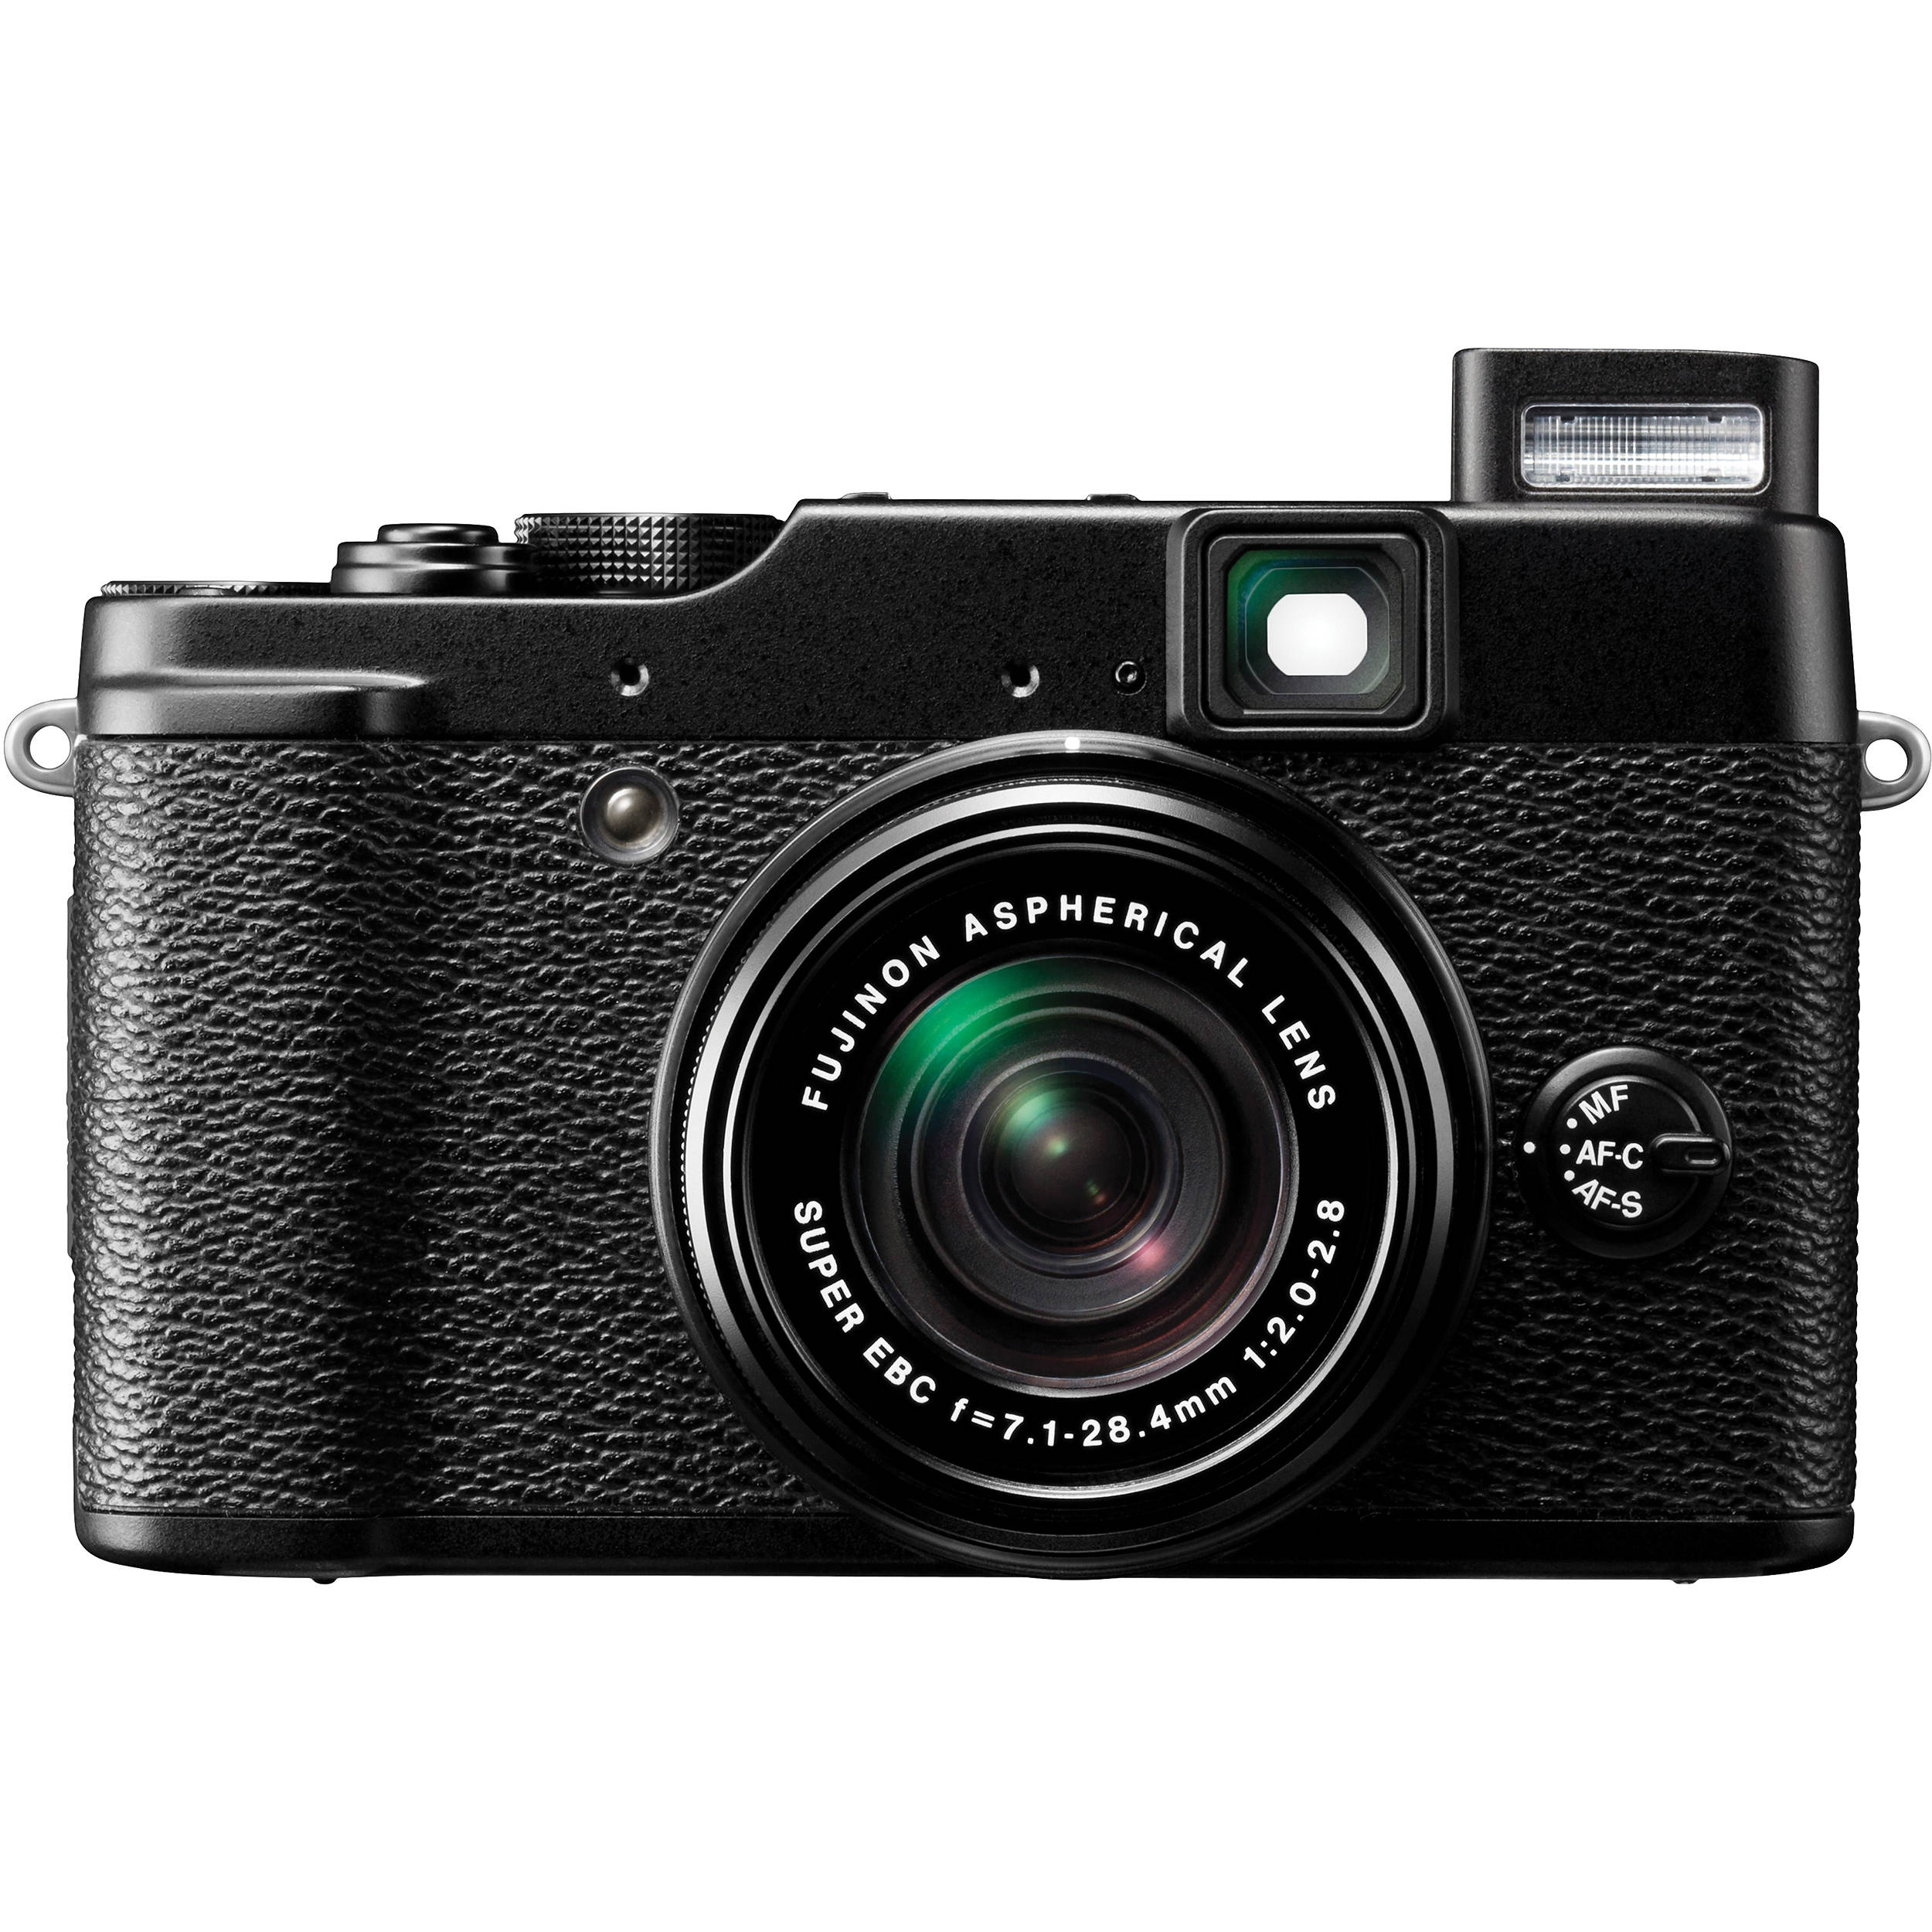 FUJIFILM X10 CAMERA DRIVERS FOR WINDOWS